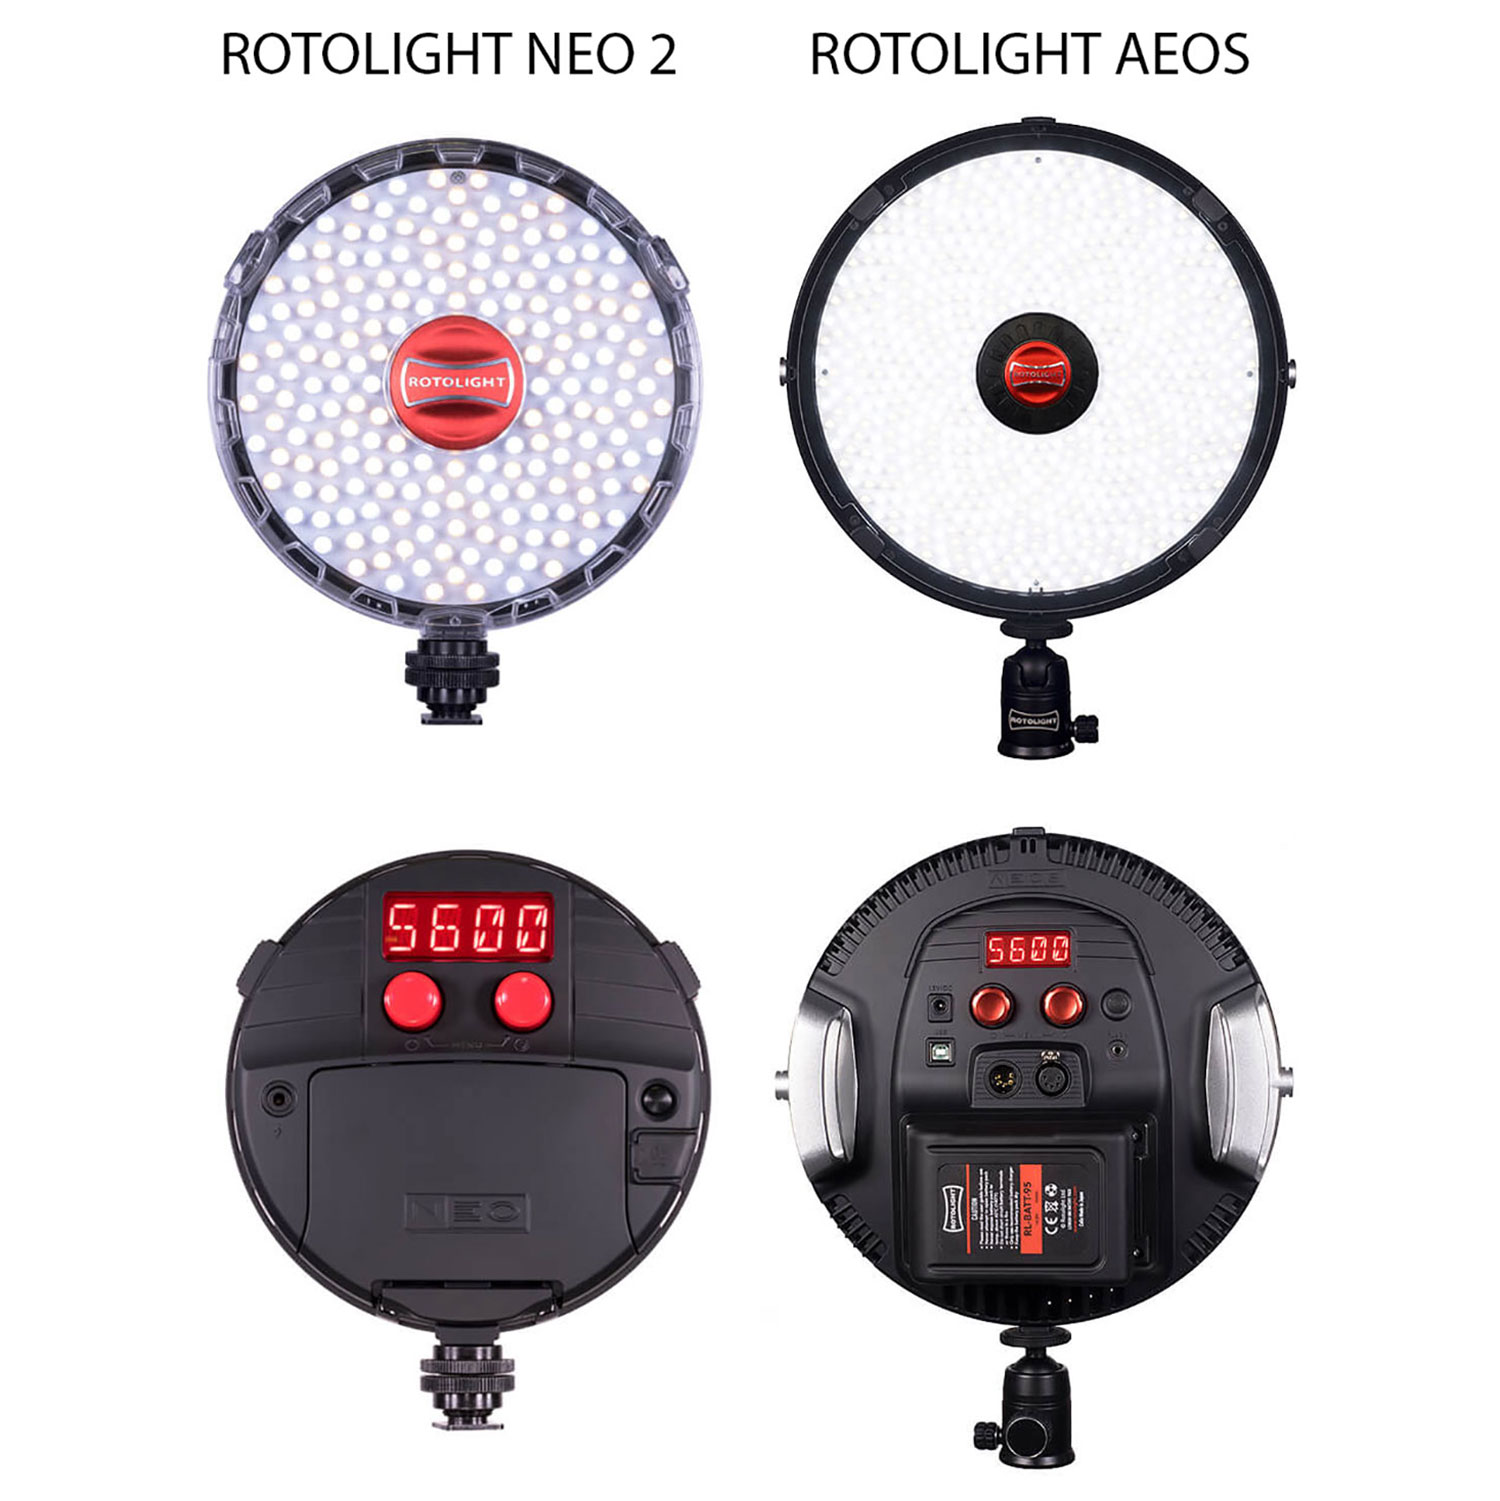 VIDEO: Testing out the Rotolight AEOS & Neo 2, using Lastolite modifiers